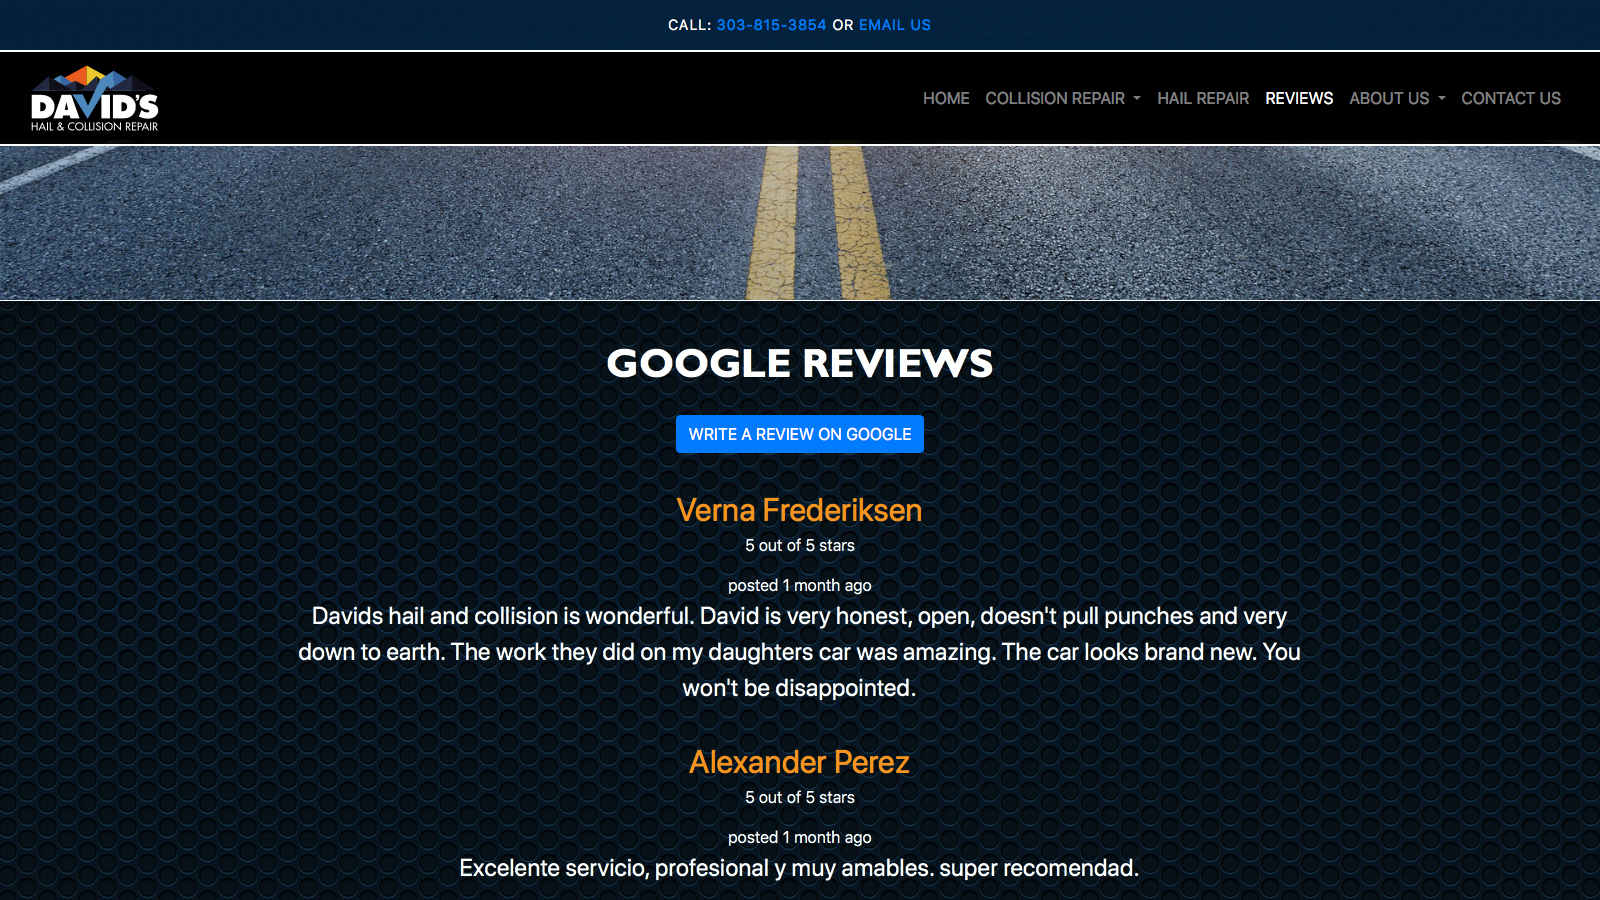 Davids Review Page